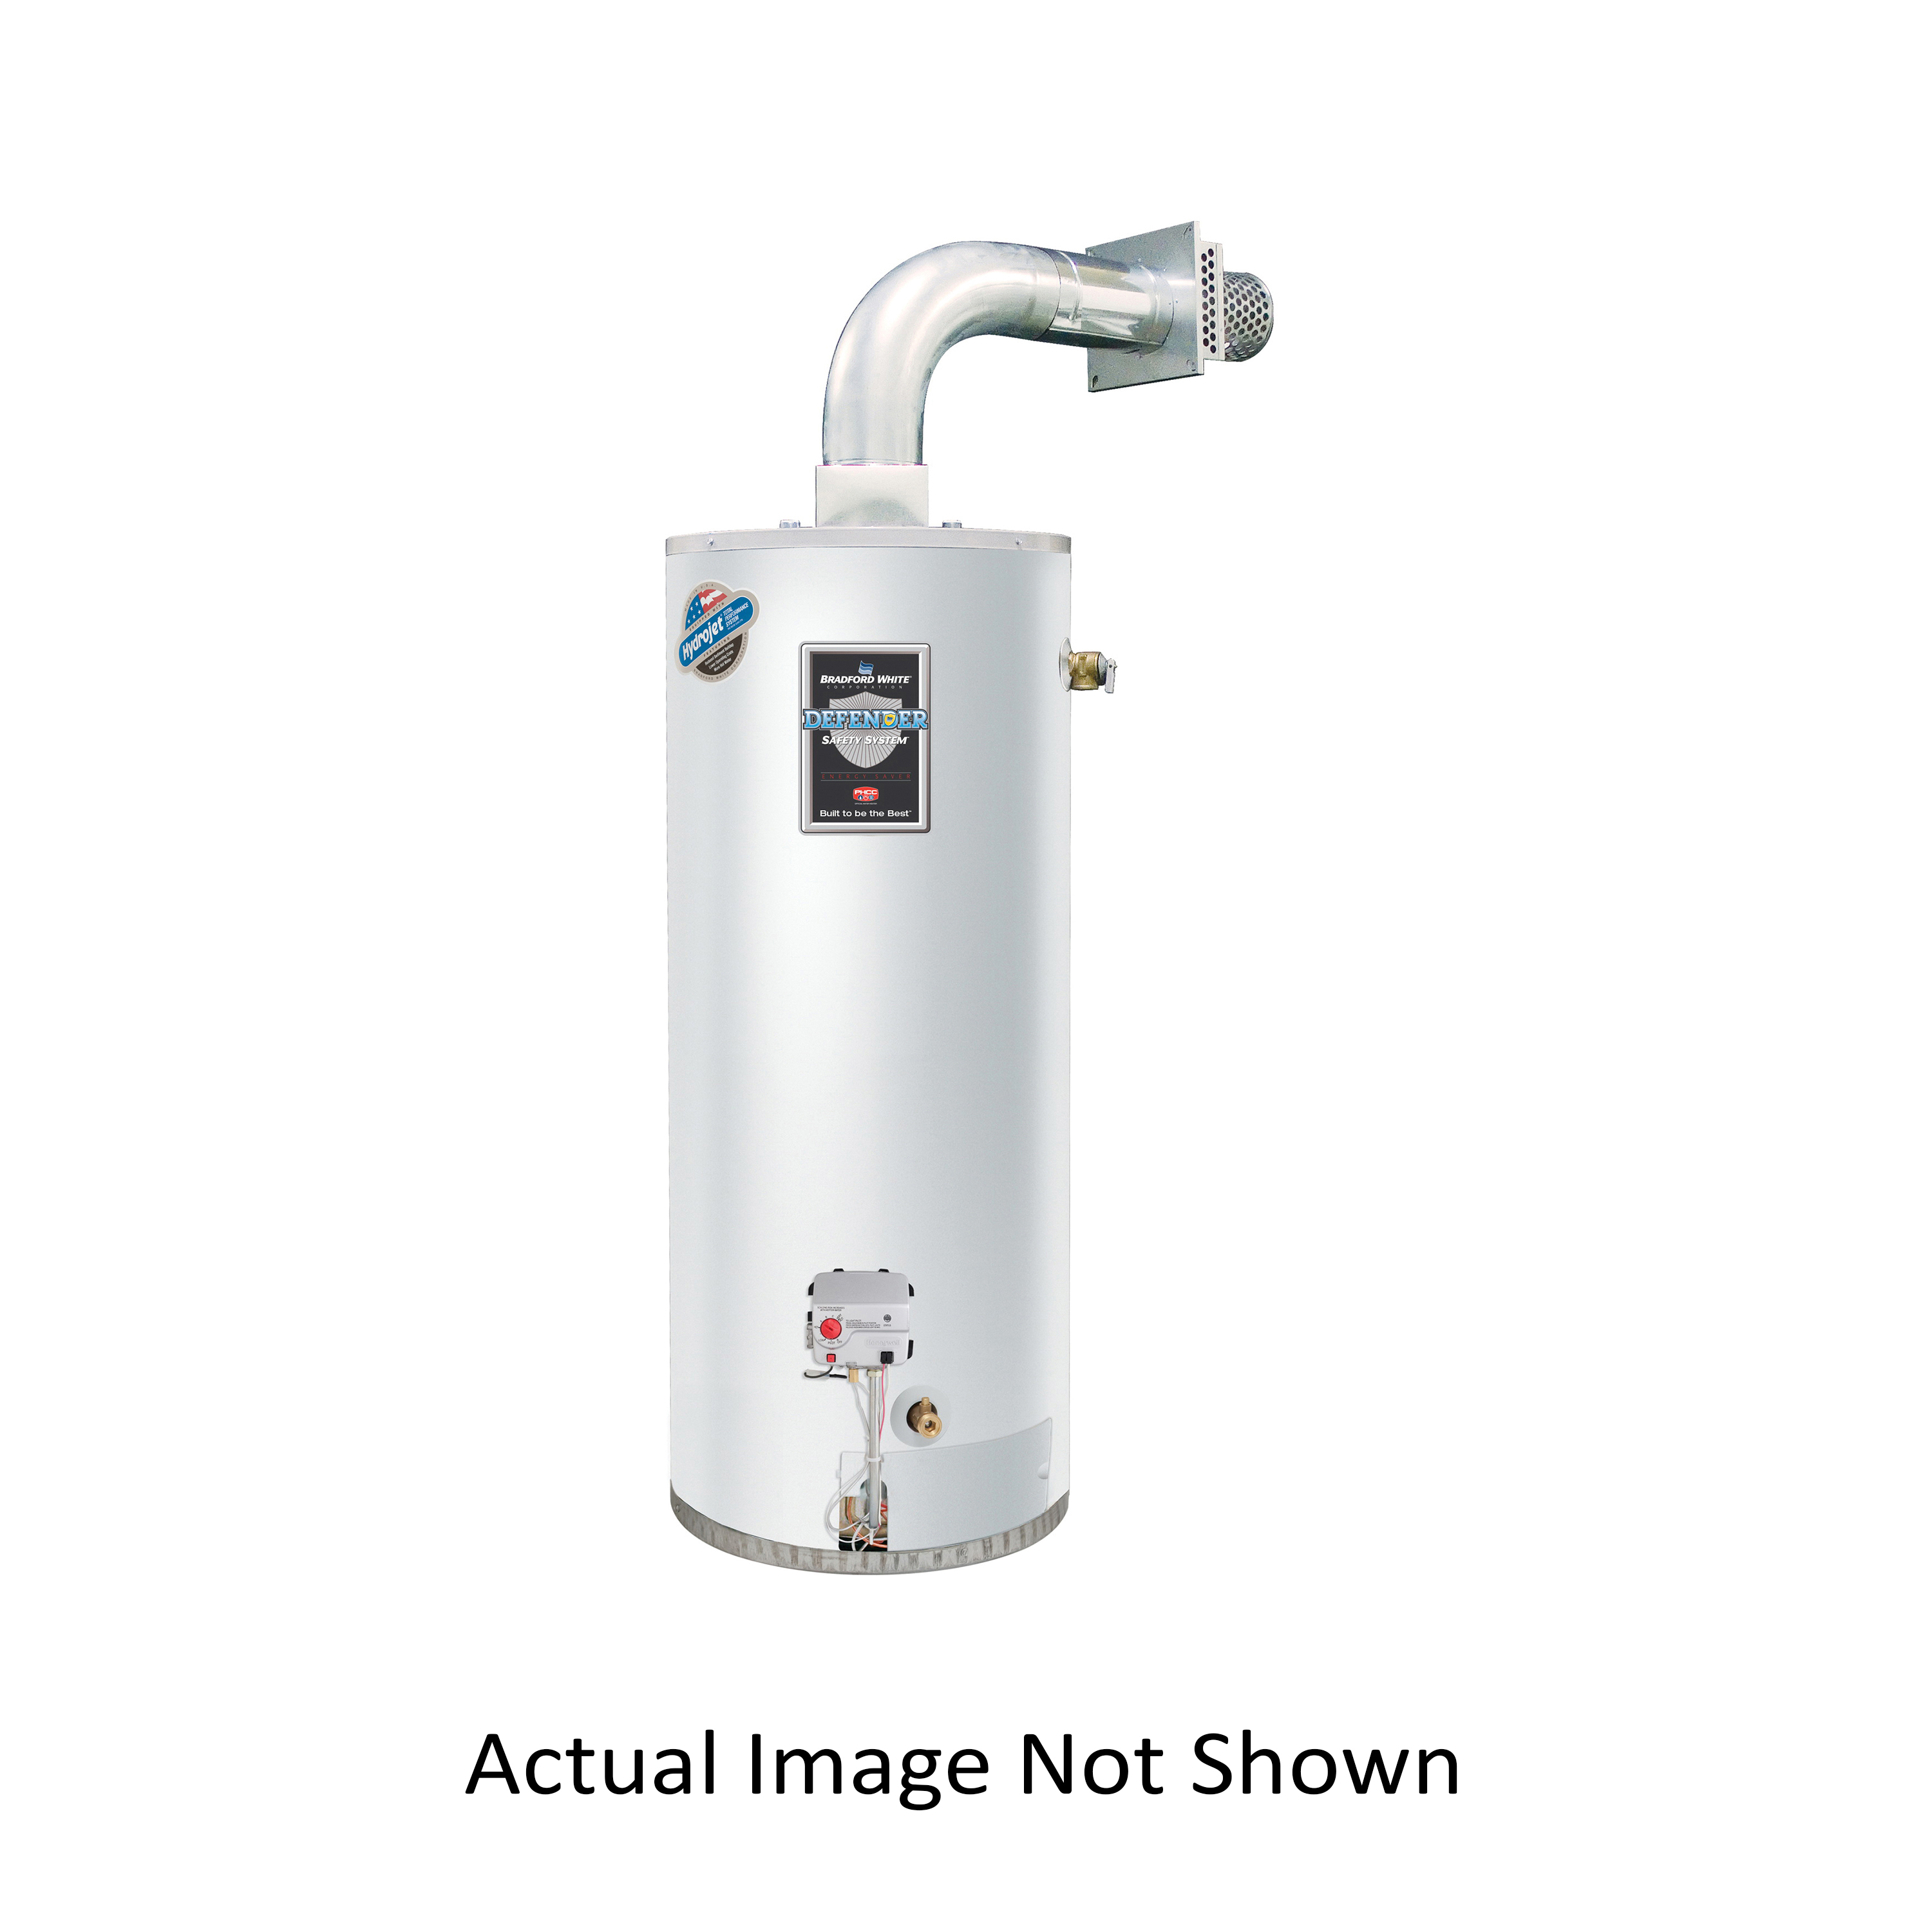 Bradford White® Defender Safety System® RG2DV50S6N-FLX Gas Water Heater, 42000 Btu/hr Heating, 50 gal Tank, Natural Gas Fuel, Direct Vent, 45 gph at 90 deg F Recovery, Ultra Low NOx: No, Domestic